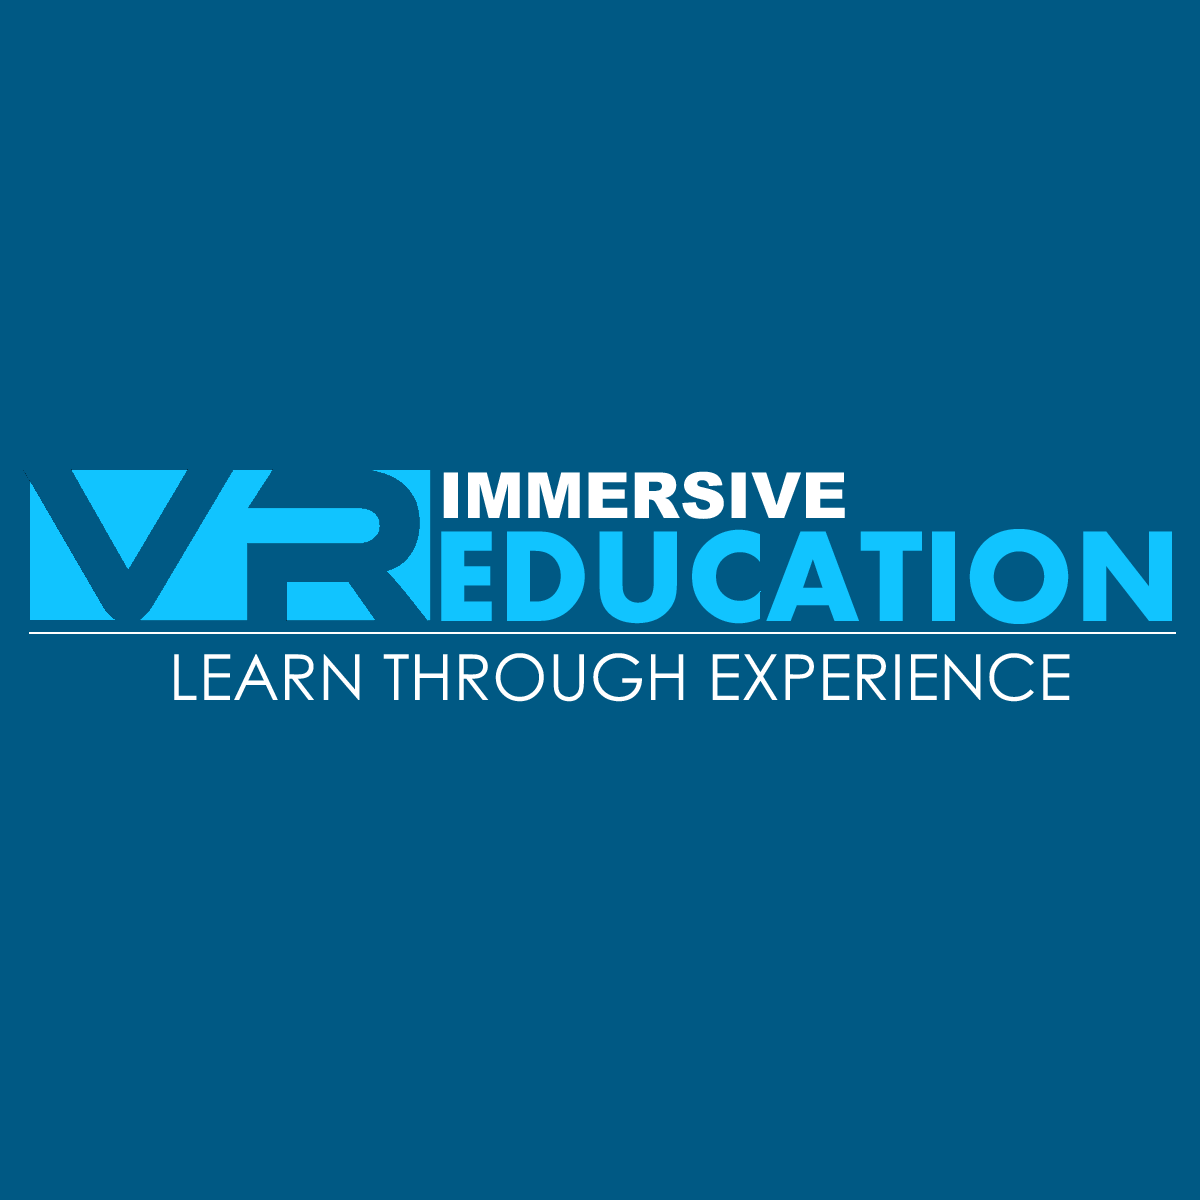 VR Education Holdings